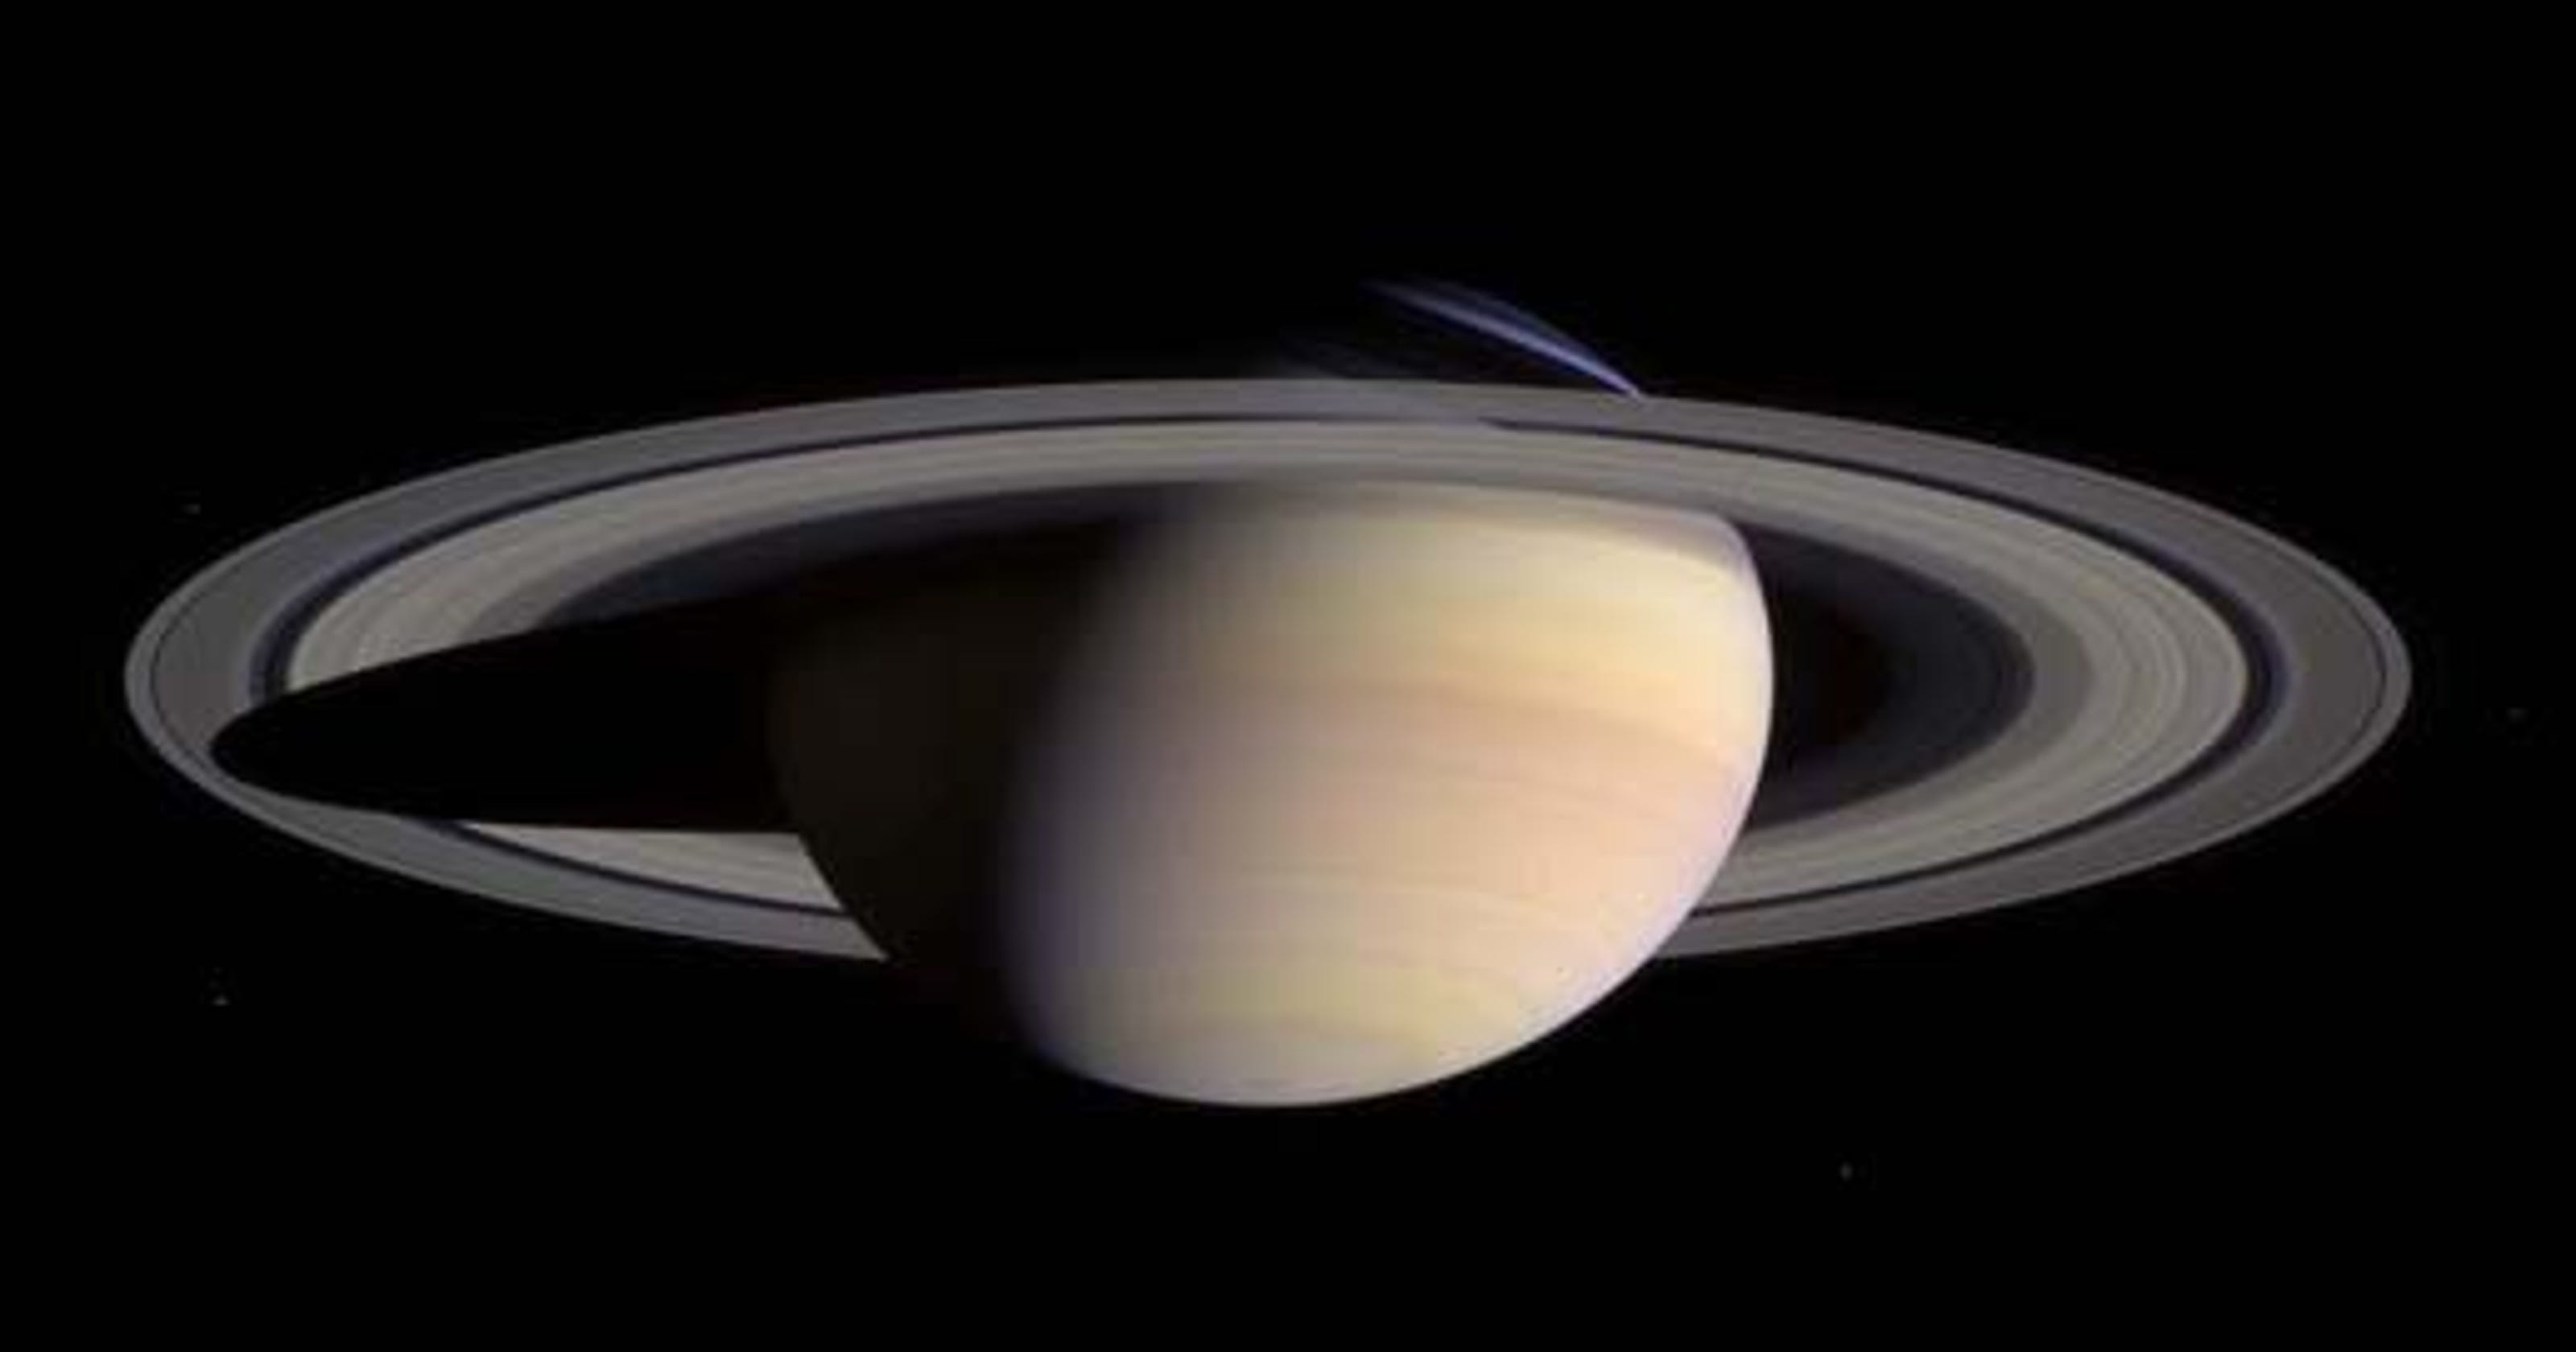 Saturn's moons may have 'sculpted' its famous rings, new study suggests